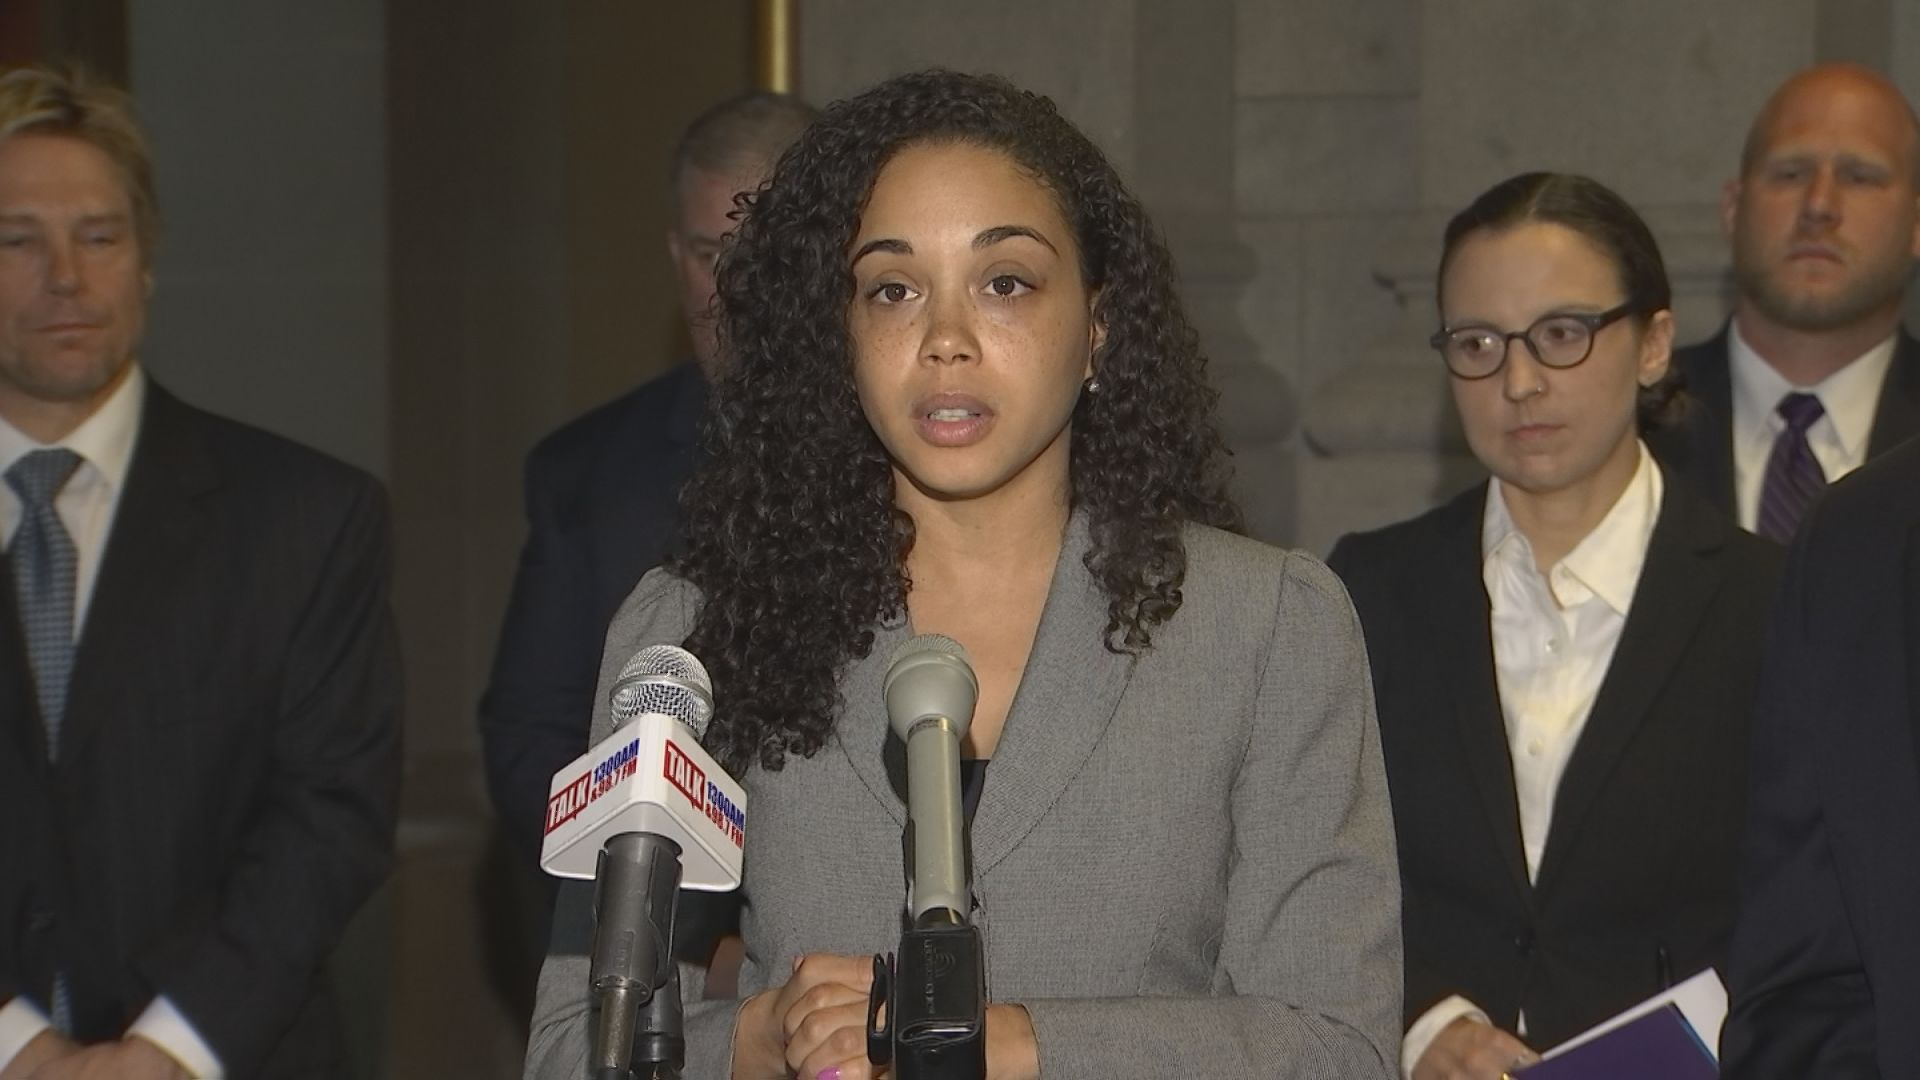 Joyner Speaks About Physicians Protection Act